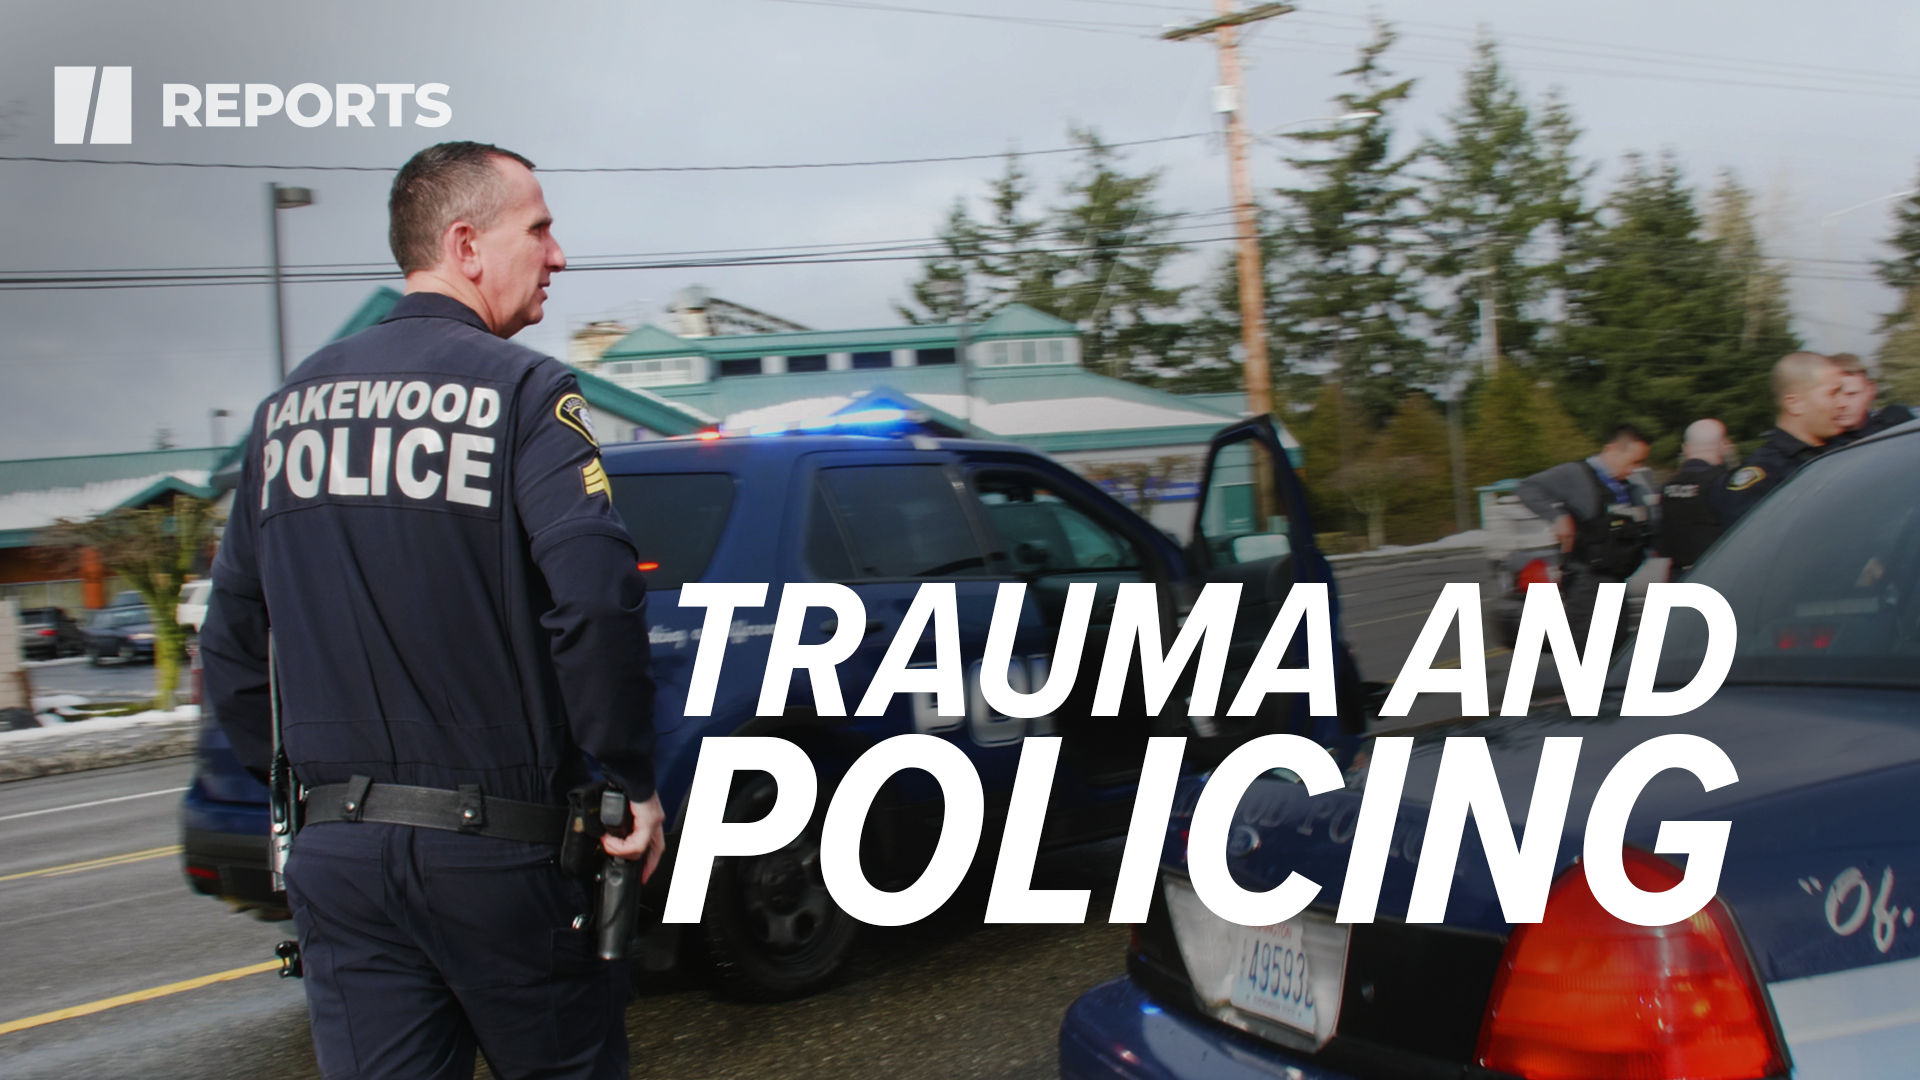 Police Departments Struggle To Protect Officers' Mental Health In The Face Of Trauma